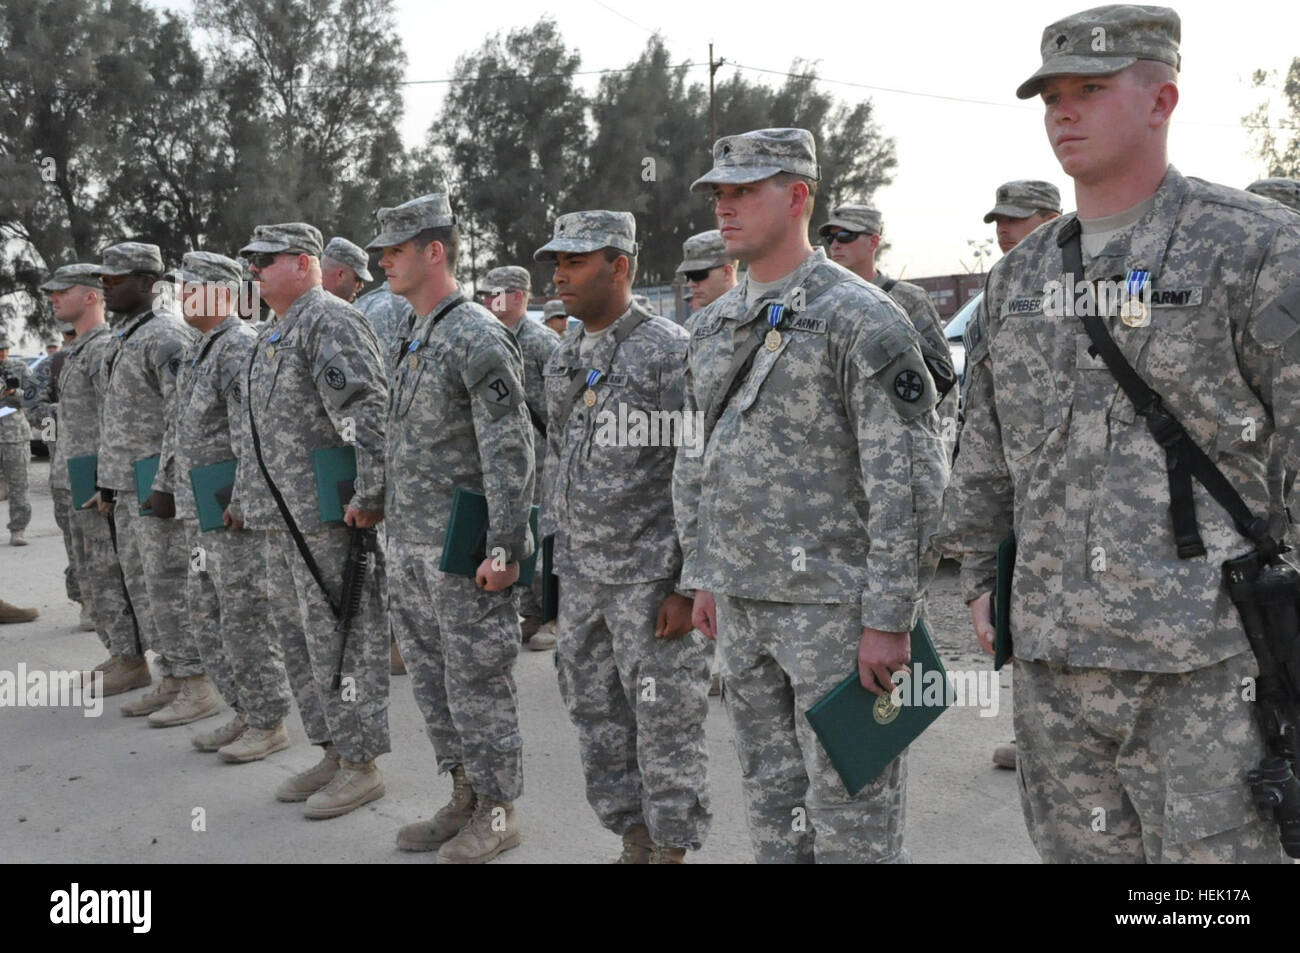 Iraqi Army Engineer Battalion High Resolution Stock Photography And Images Alamy